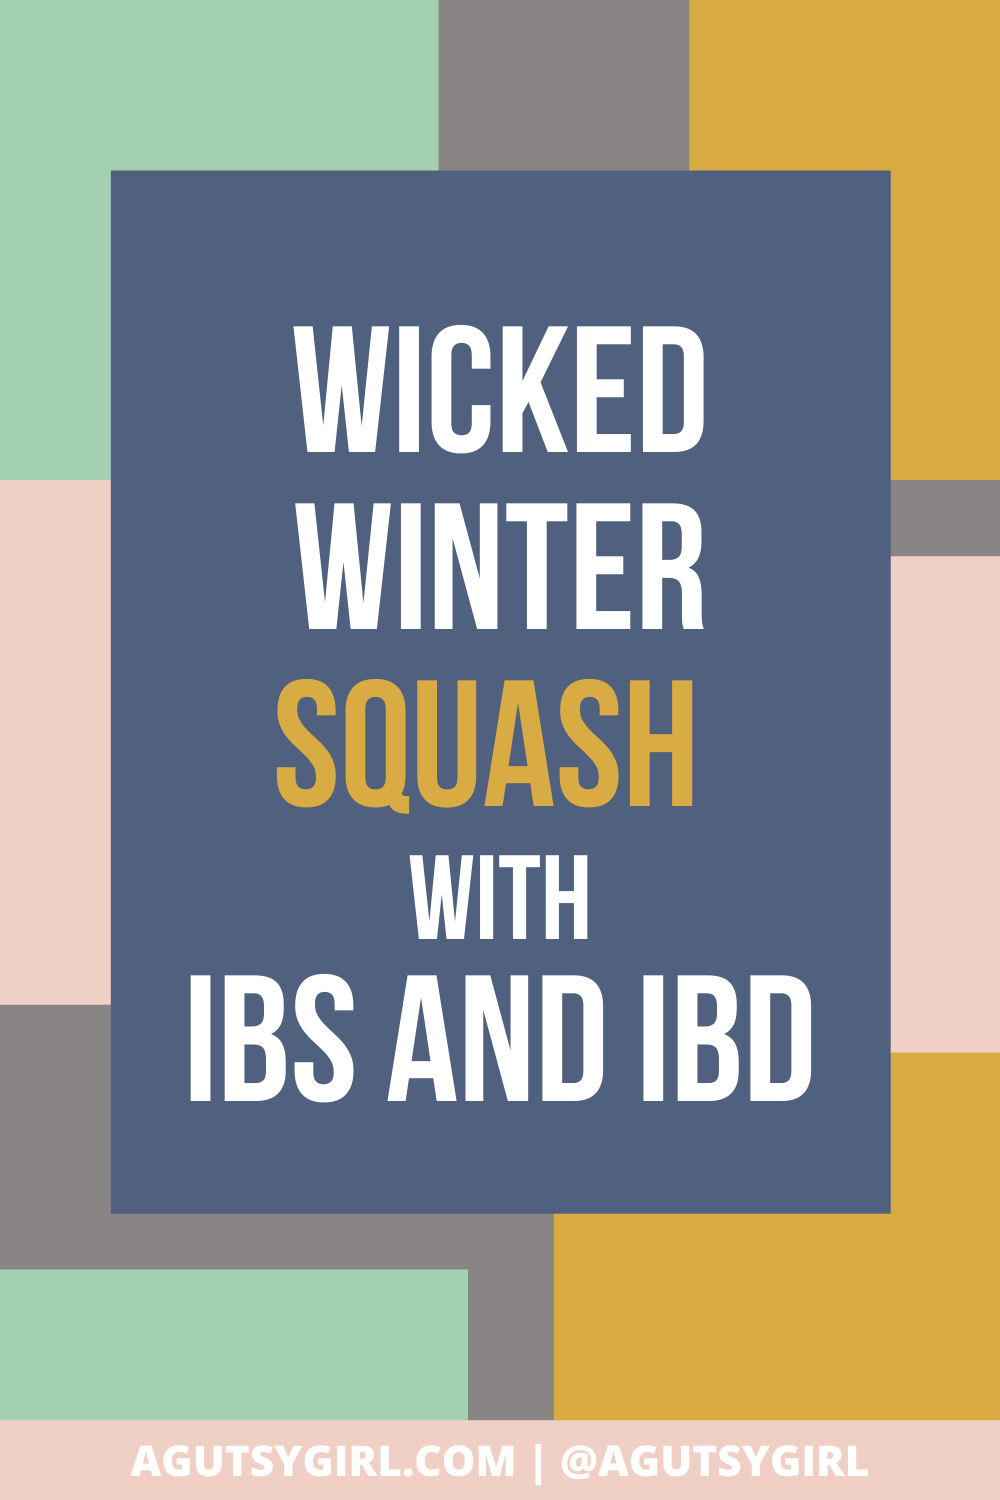 Wicked Winter Squash with IBS and IBD agutsygirl.com #wintersquash #ibs #ibd #guthealth squashes